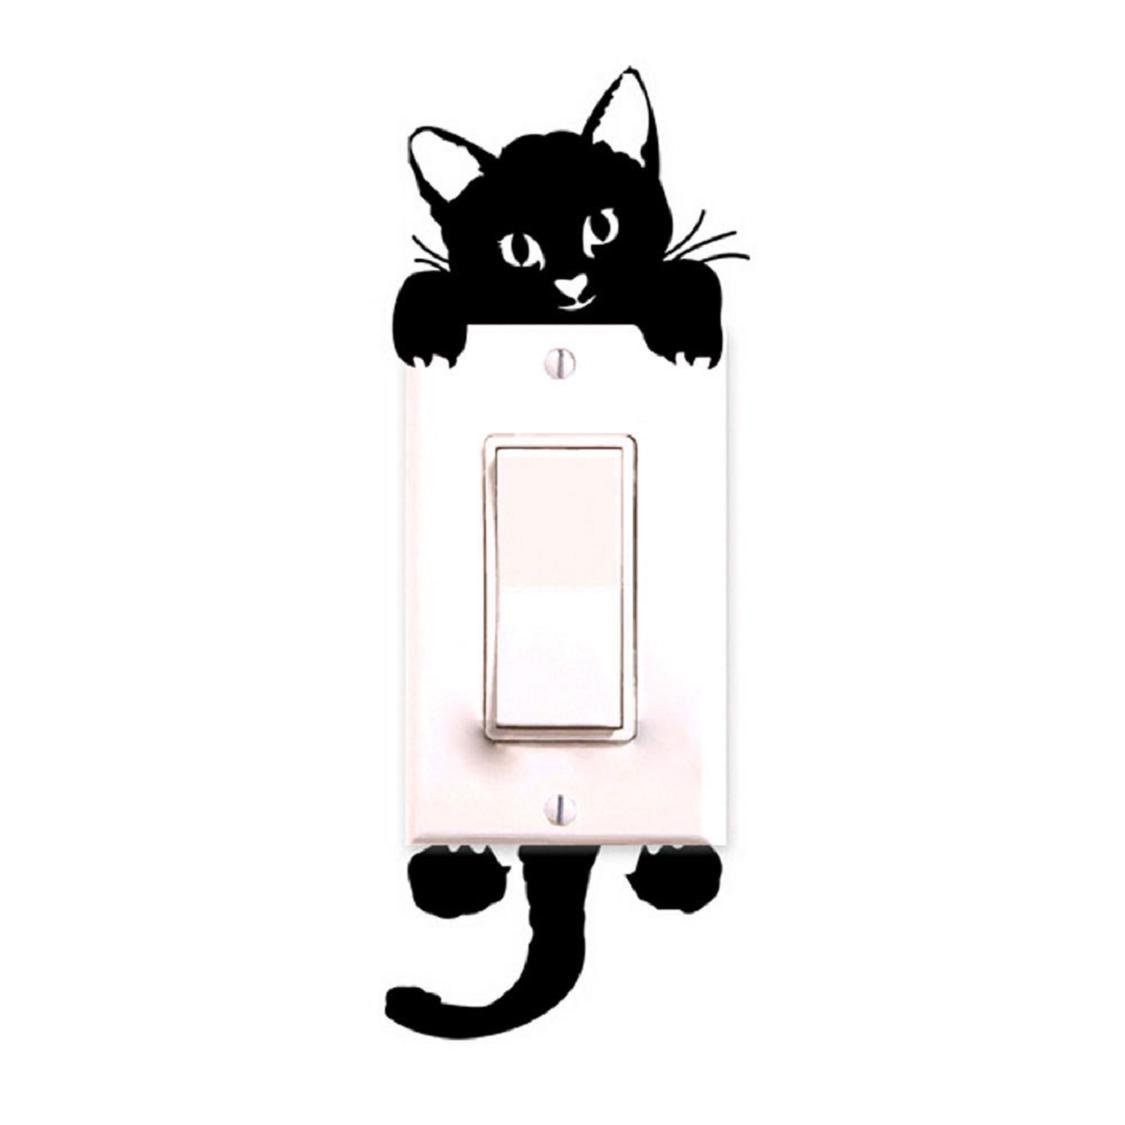 Switch Sticker, Naladoo New Cat Wall Stickers Light Switch Decor Decals Art Mural Baby Nursery Room IU32566436436